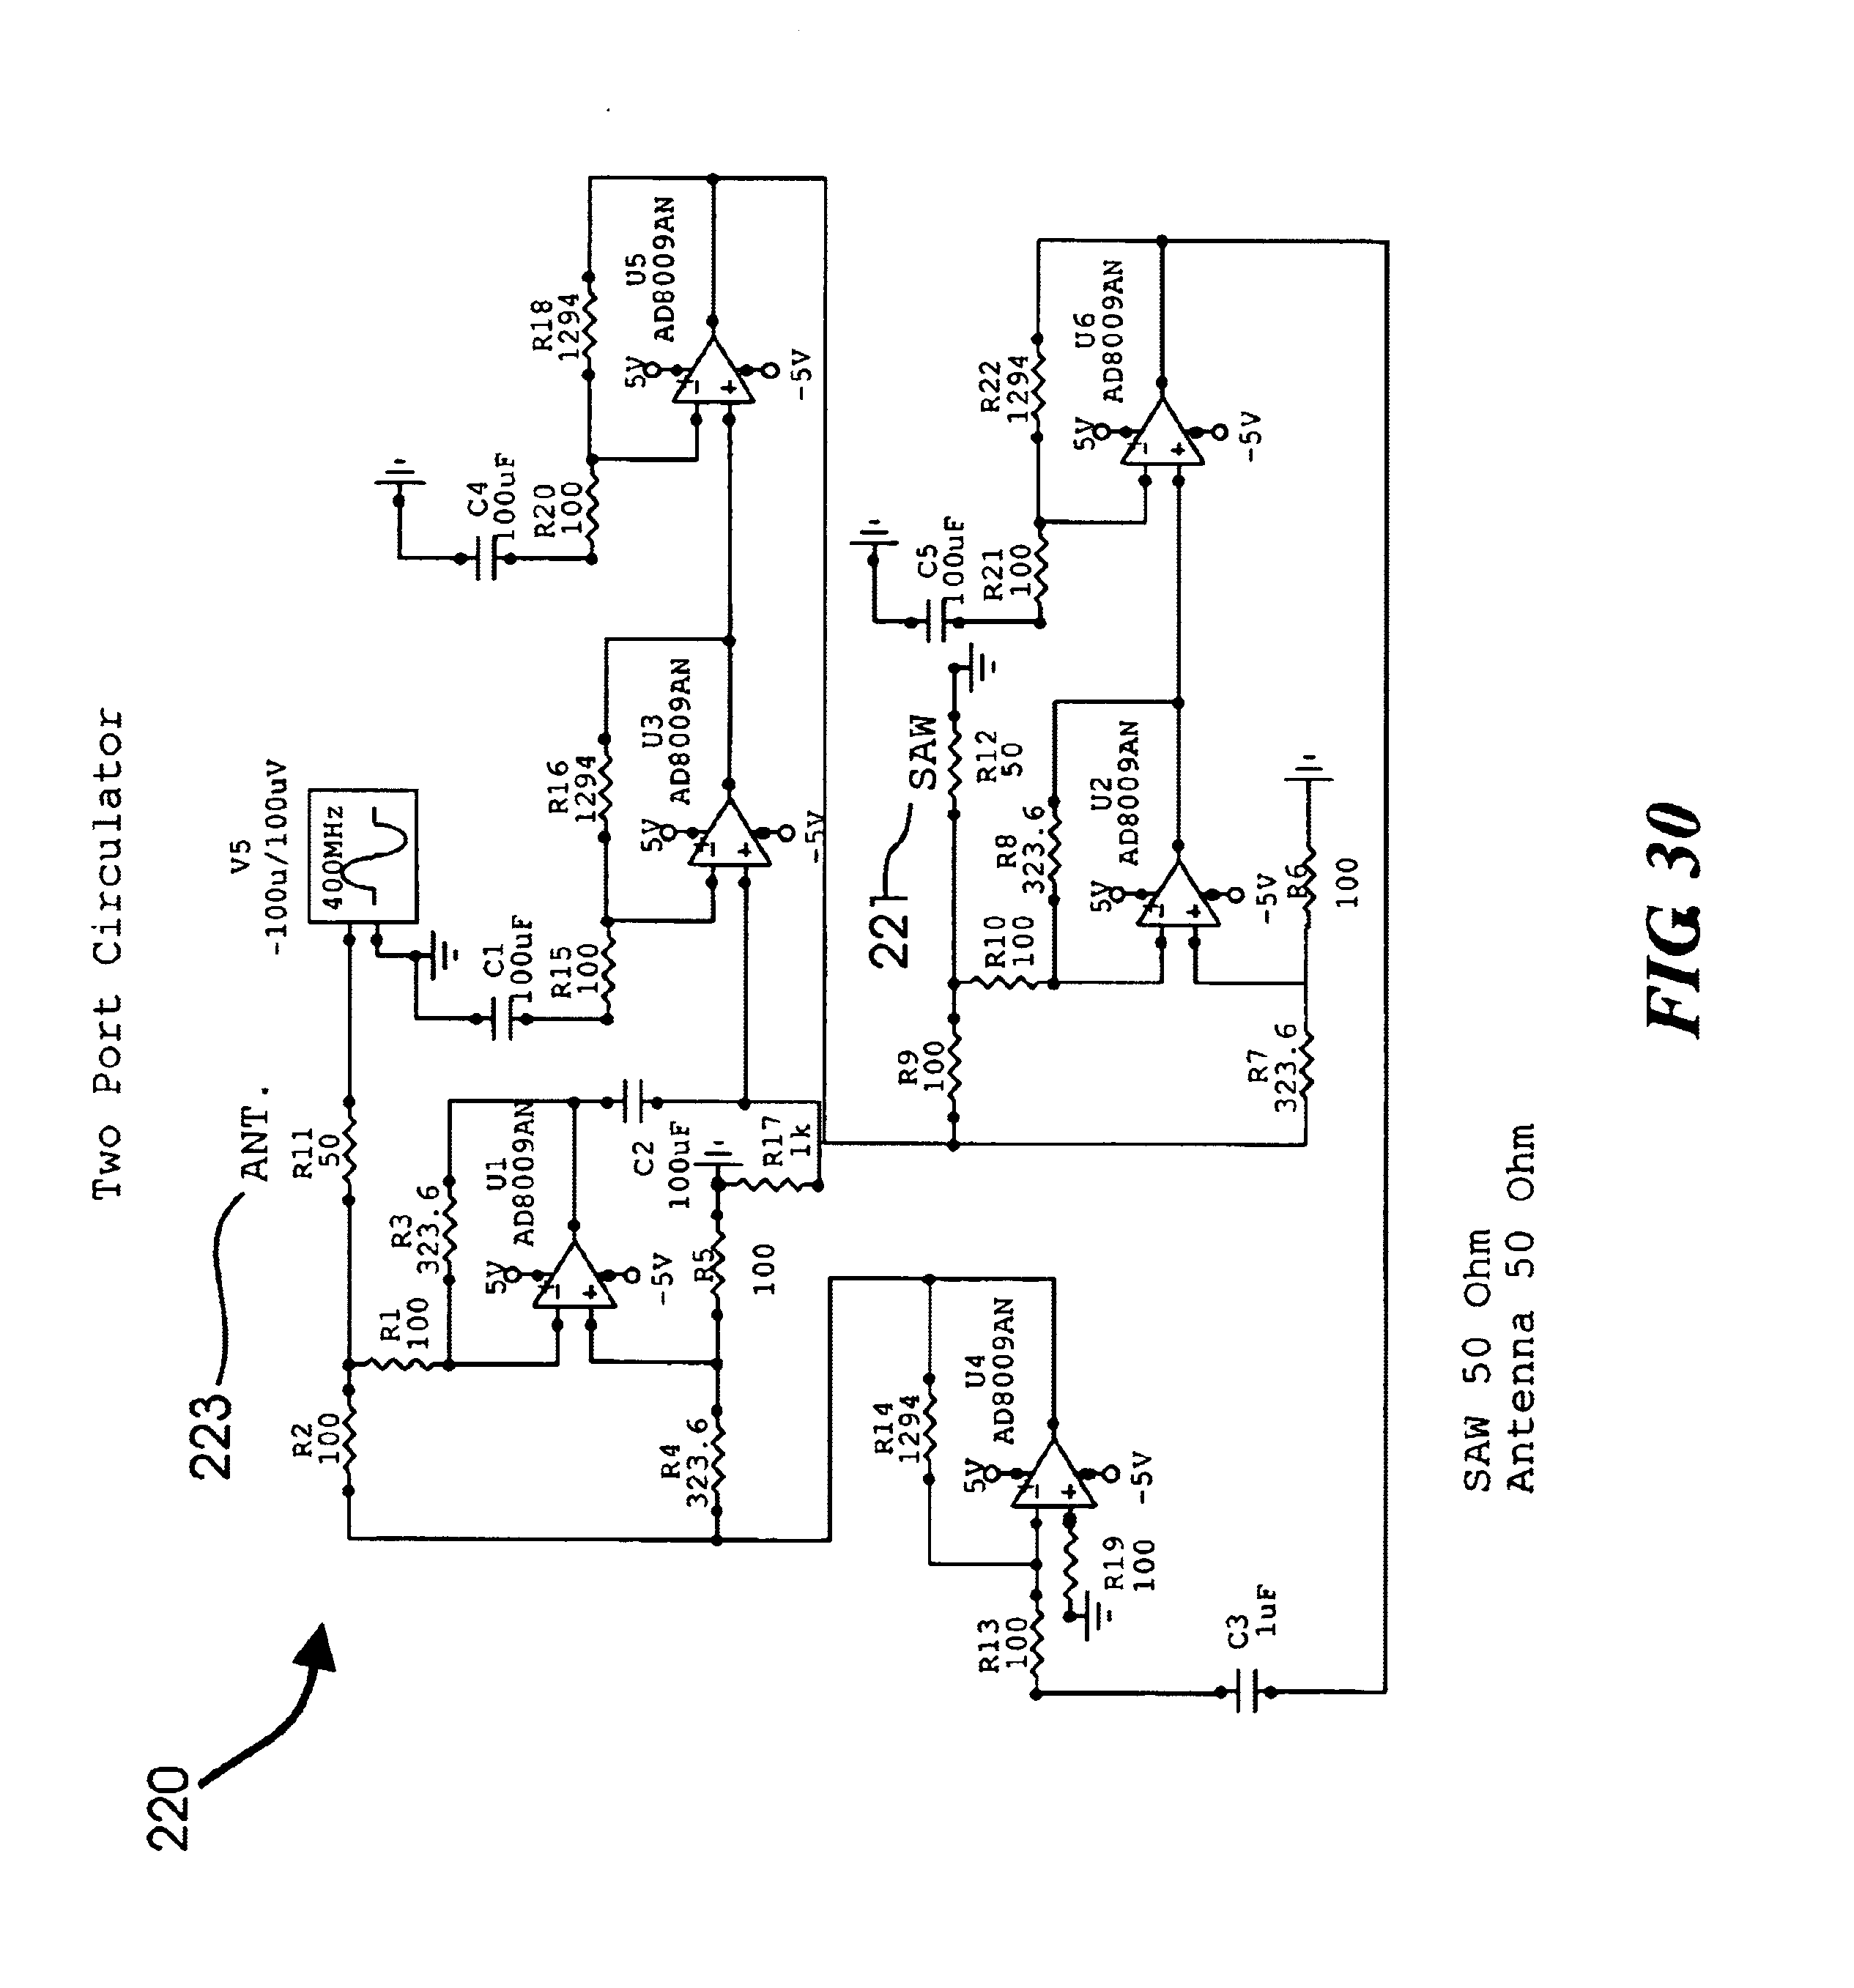 Patent Us 6988026 B2 Circuit Triangle Signal Generator Designed By Dave Johnson P Images